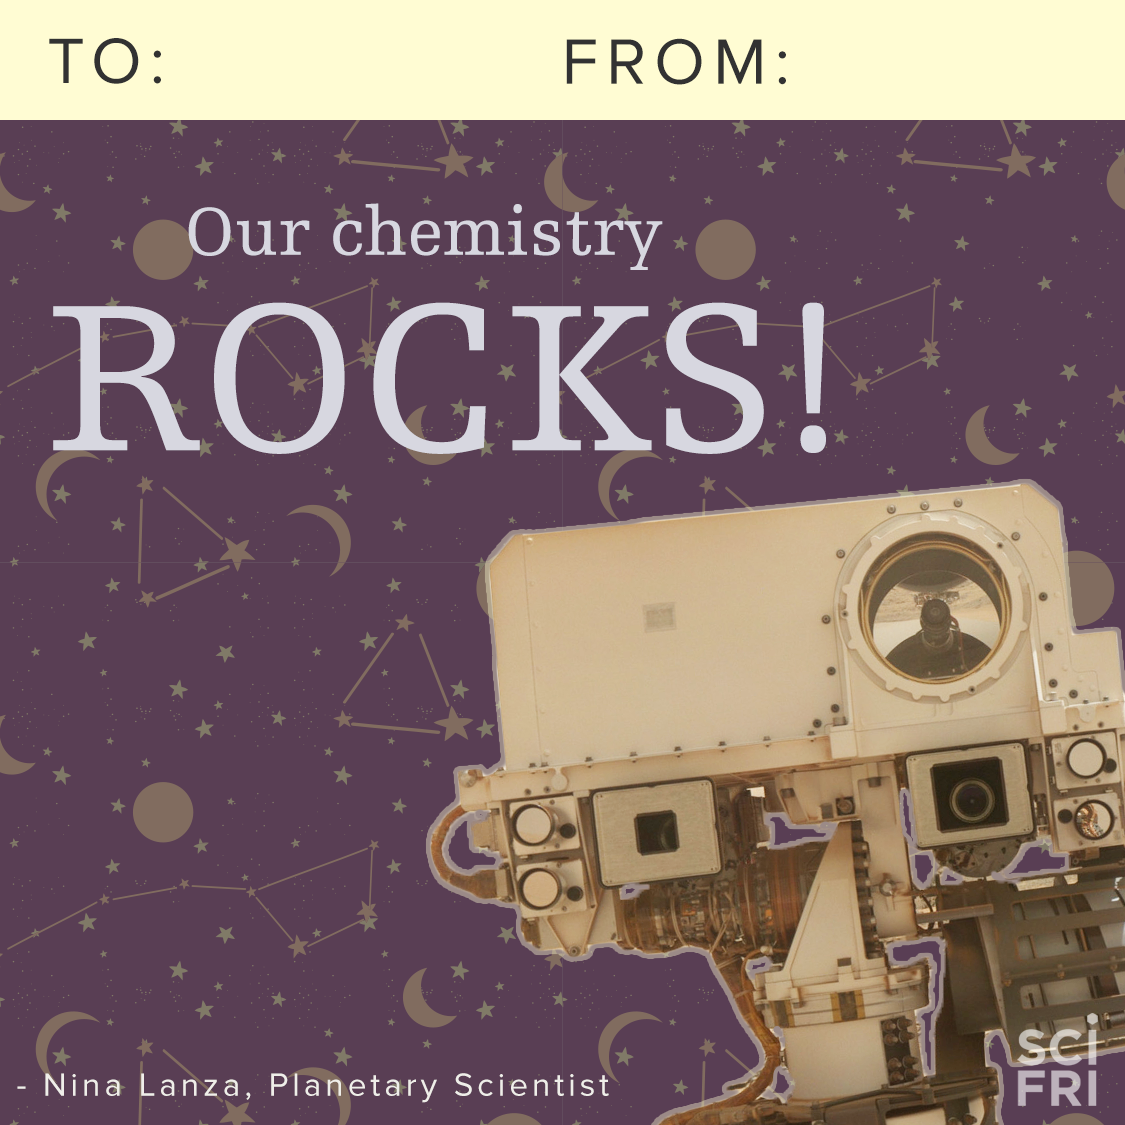 Listen to Nina Lanza talk about space rocks on SciFri